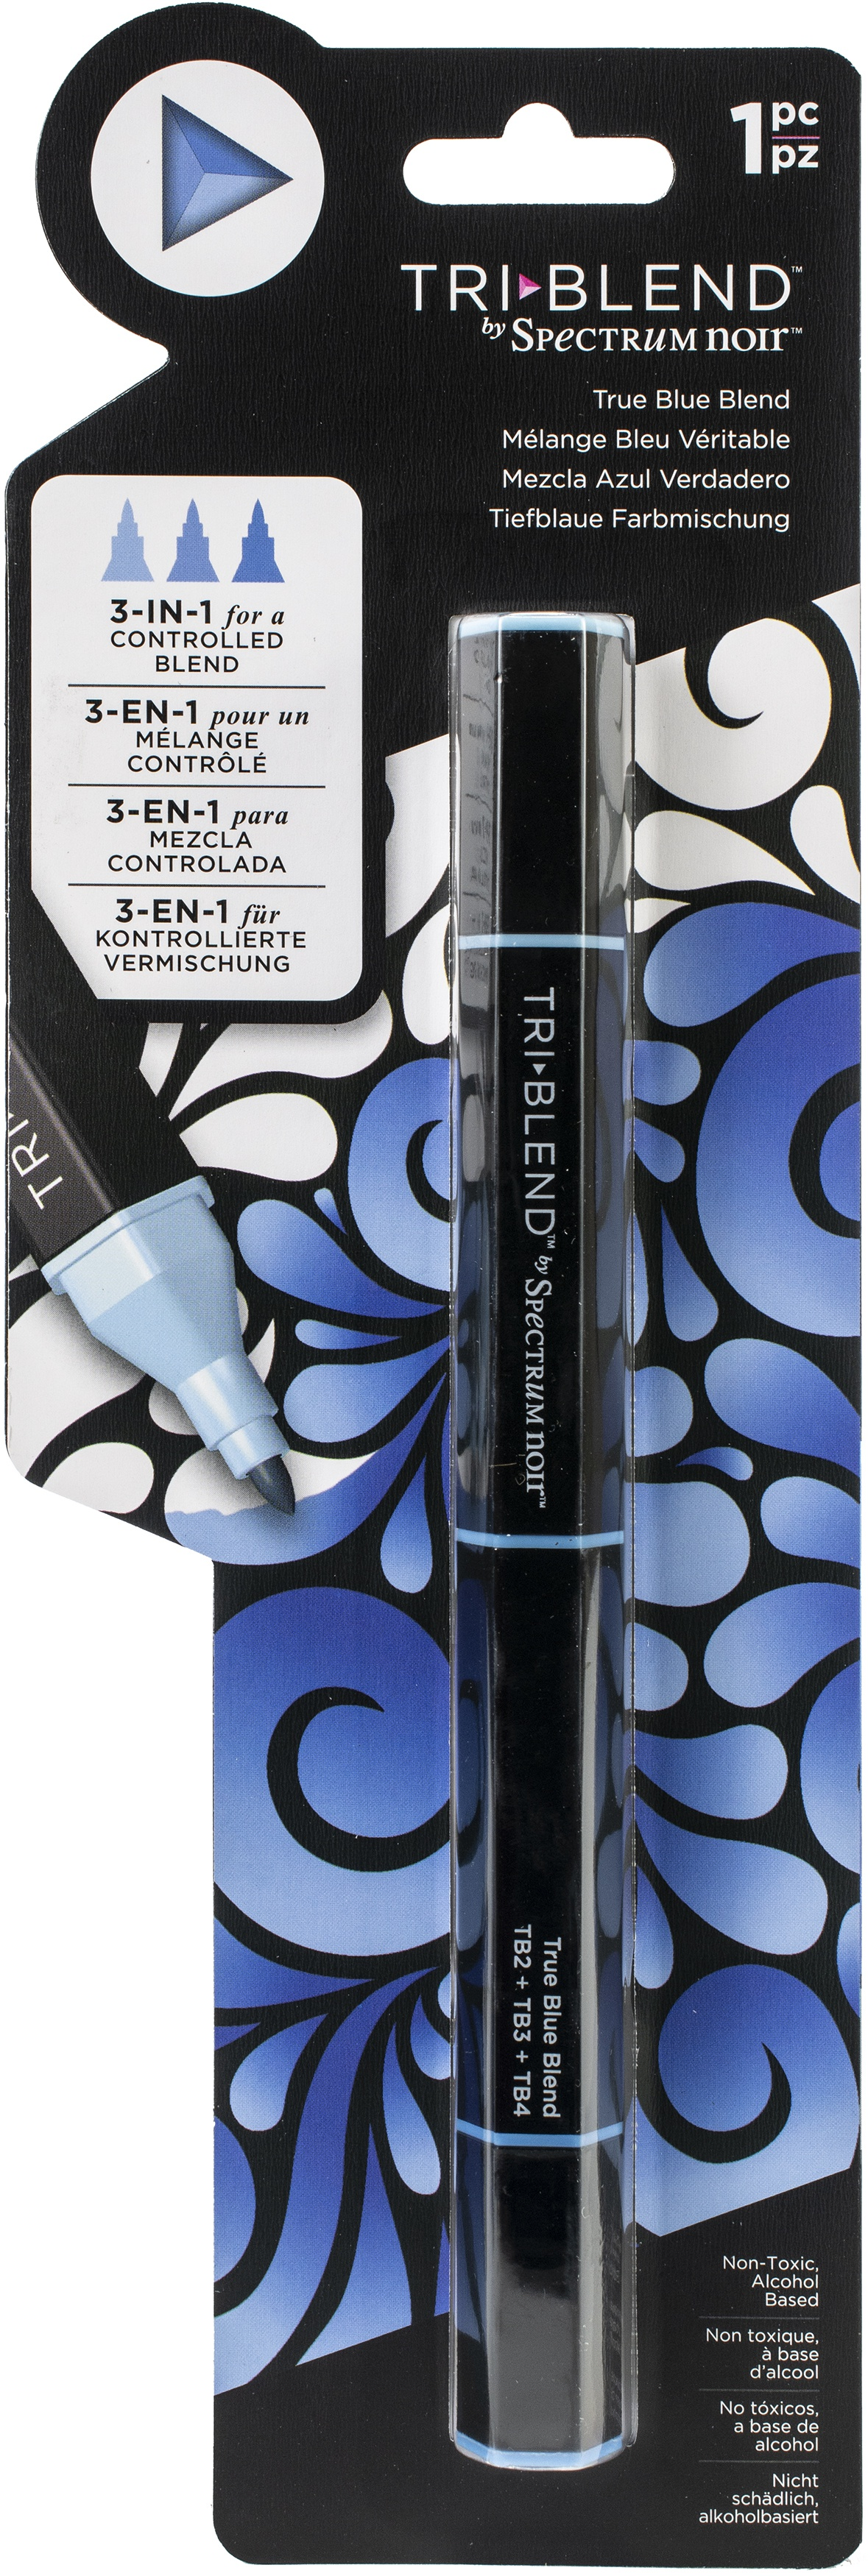 Spectrum Noir Triblend Marker-True Blue Blend